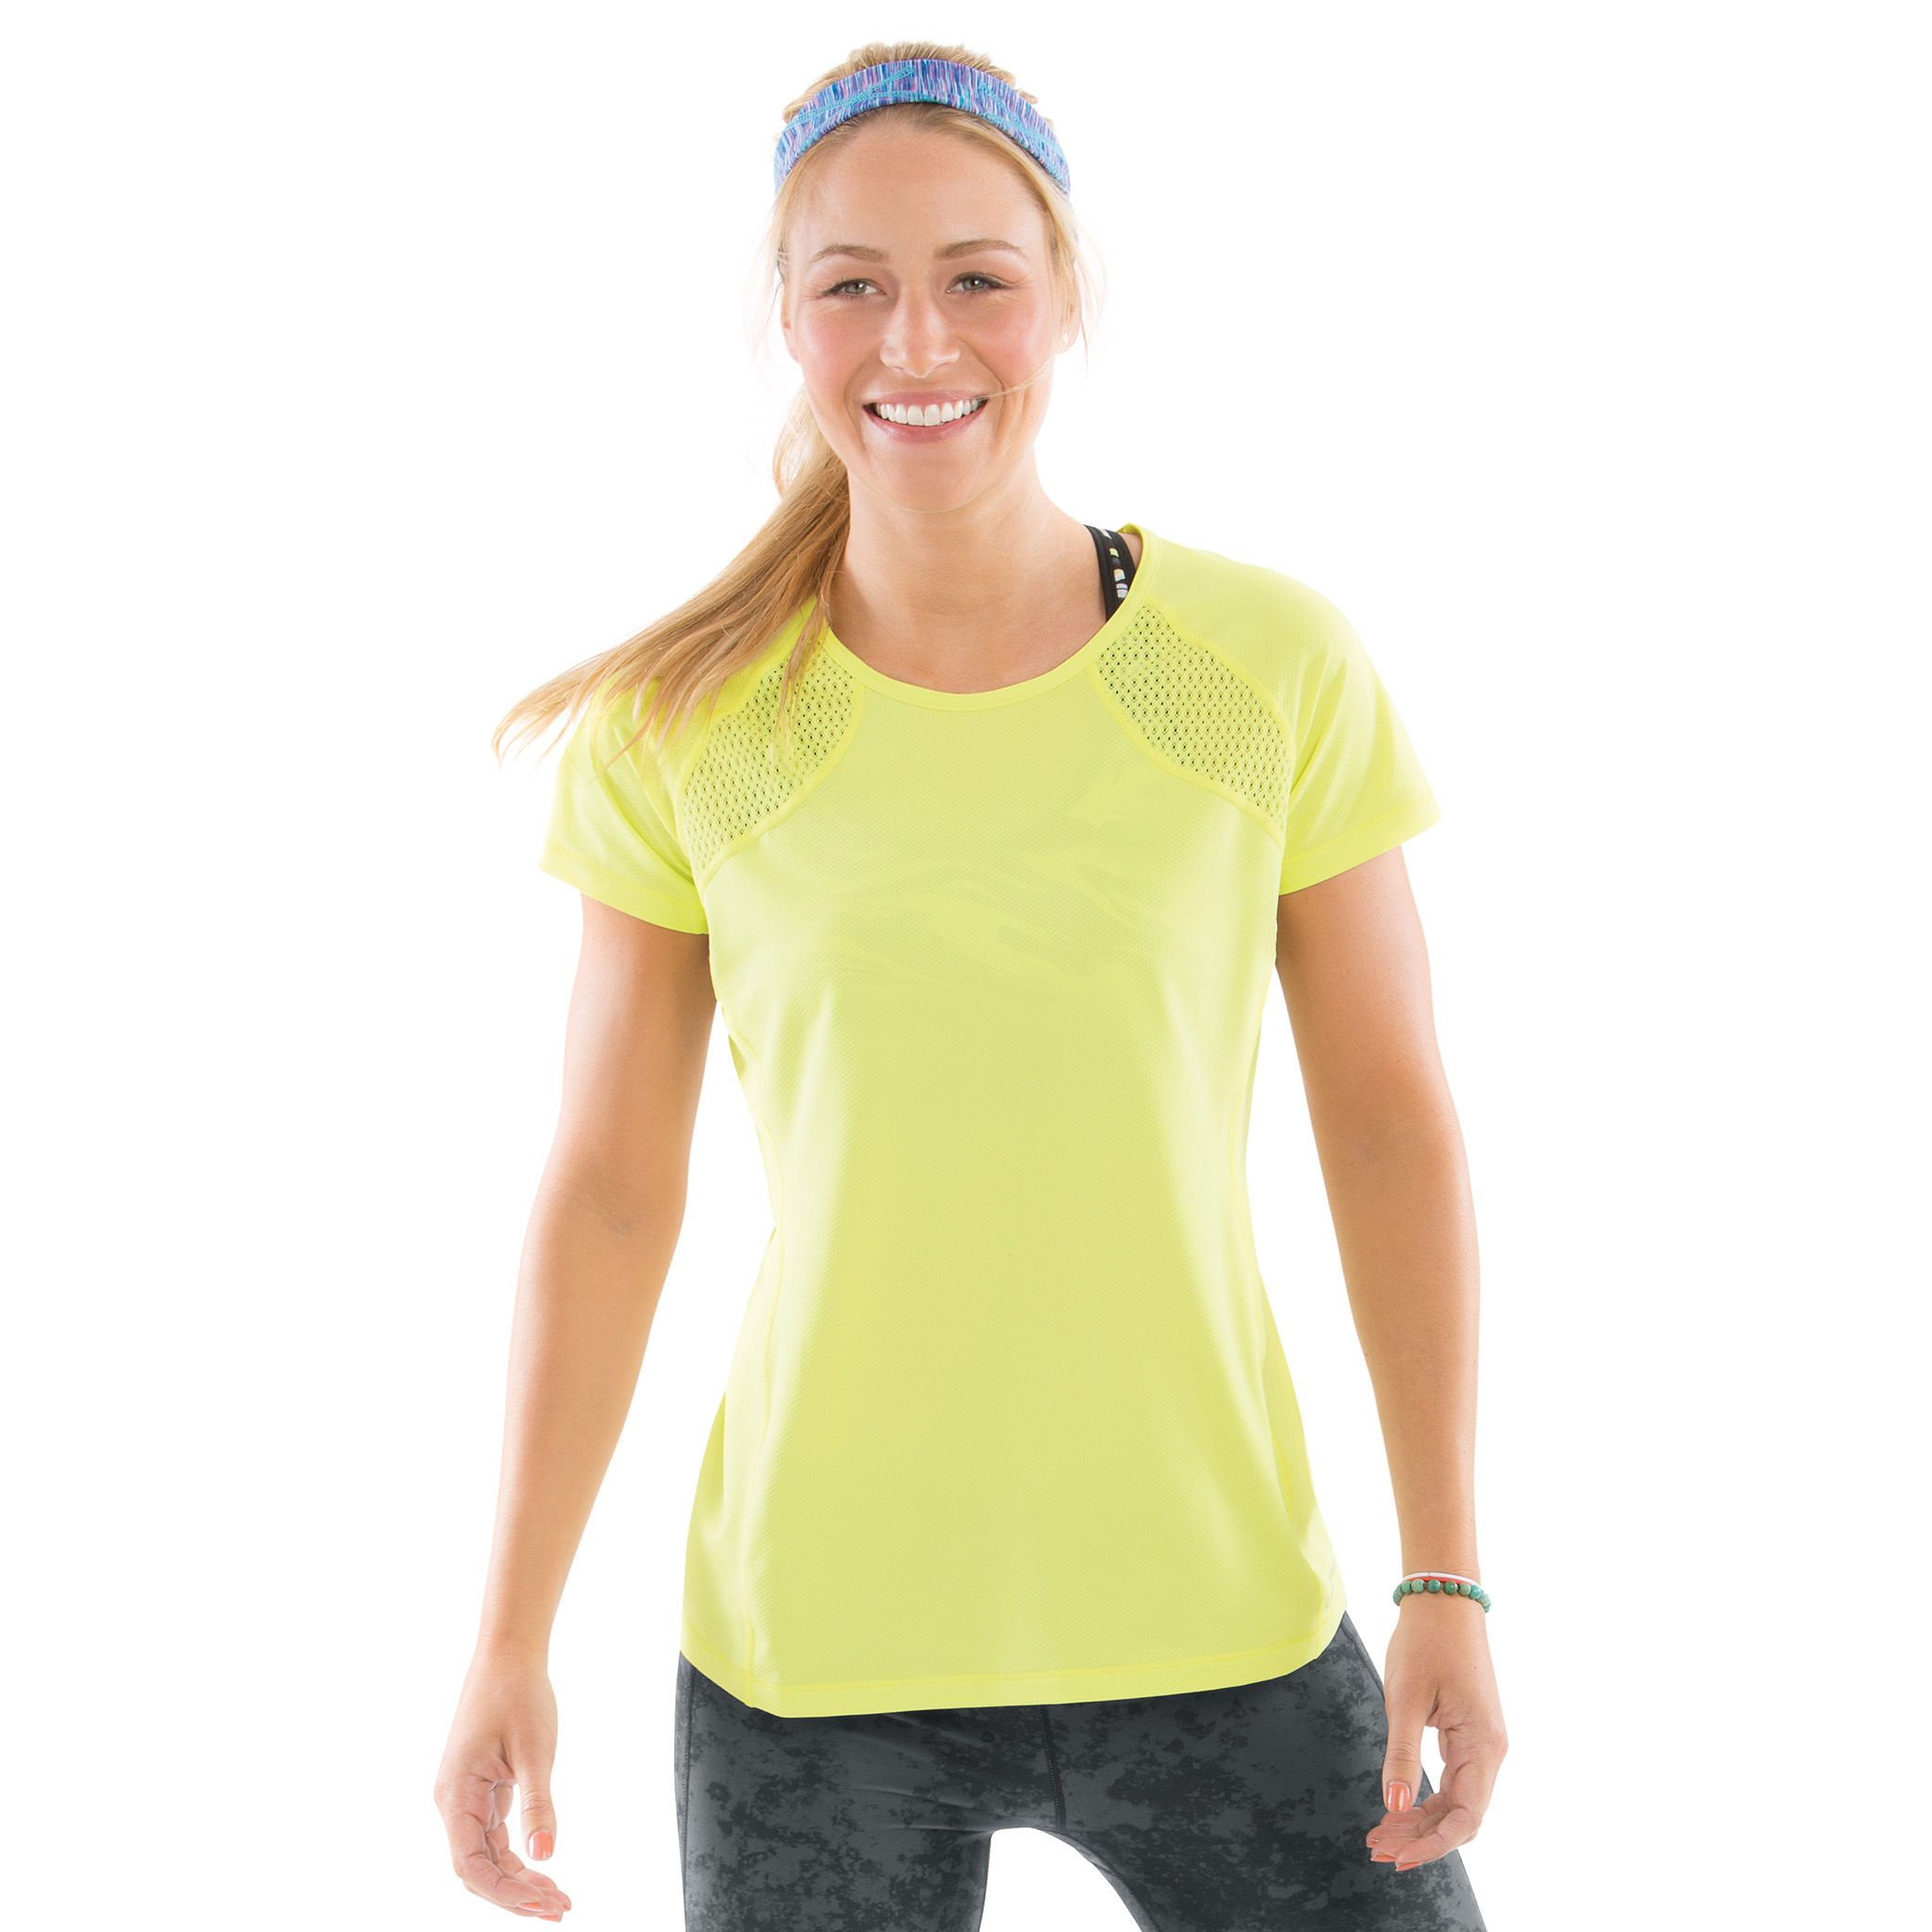 Dash Tee Moving Comfort (With images) Fitness fashion